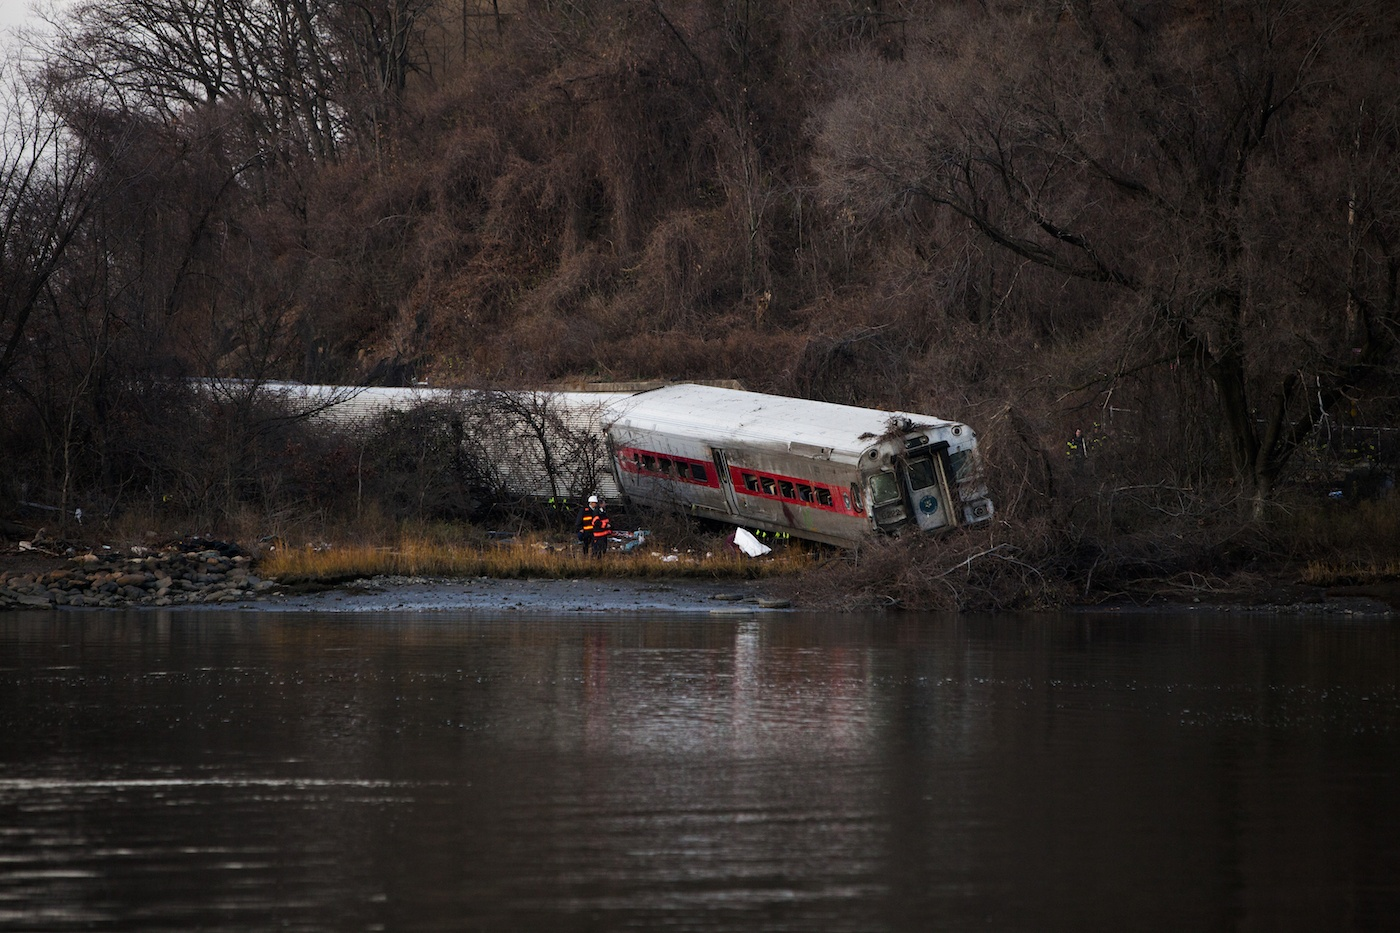 Metro-North Train Derails In Bronx, Multiple Injuries, Deaths Reported